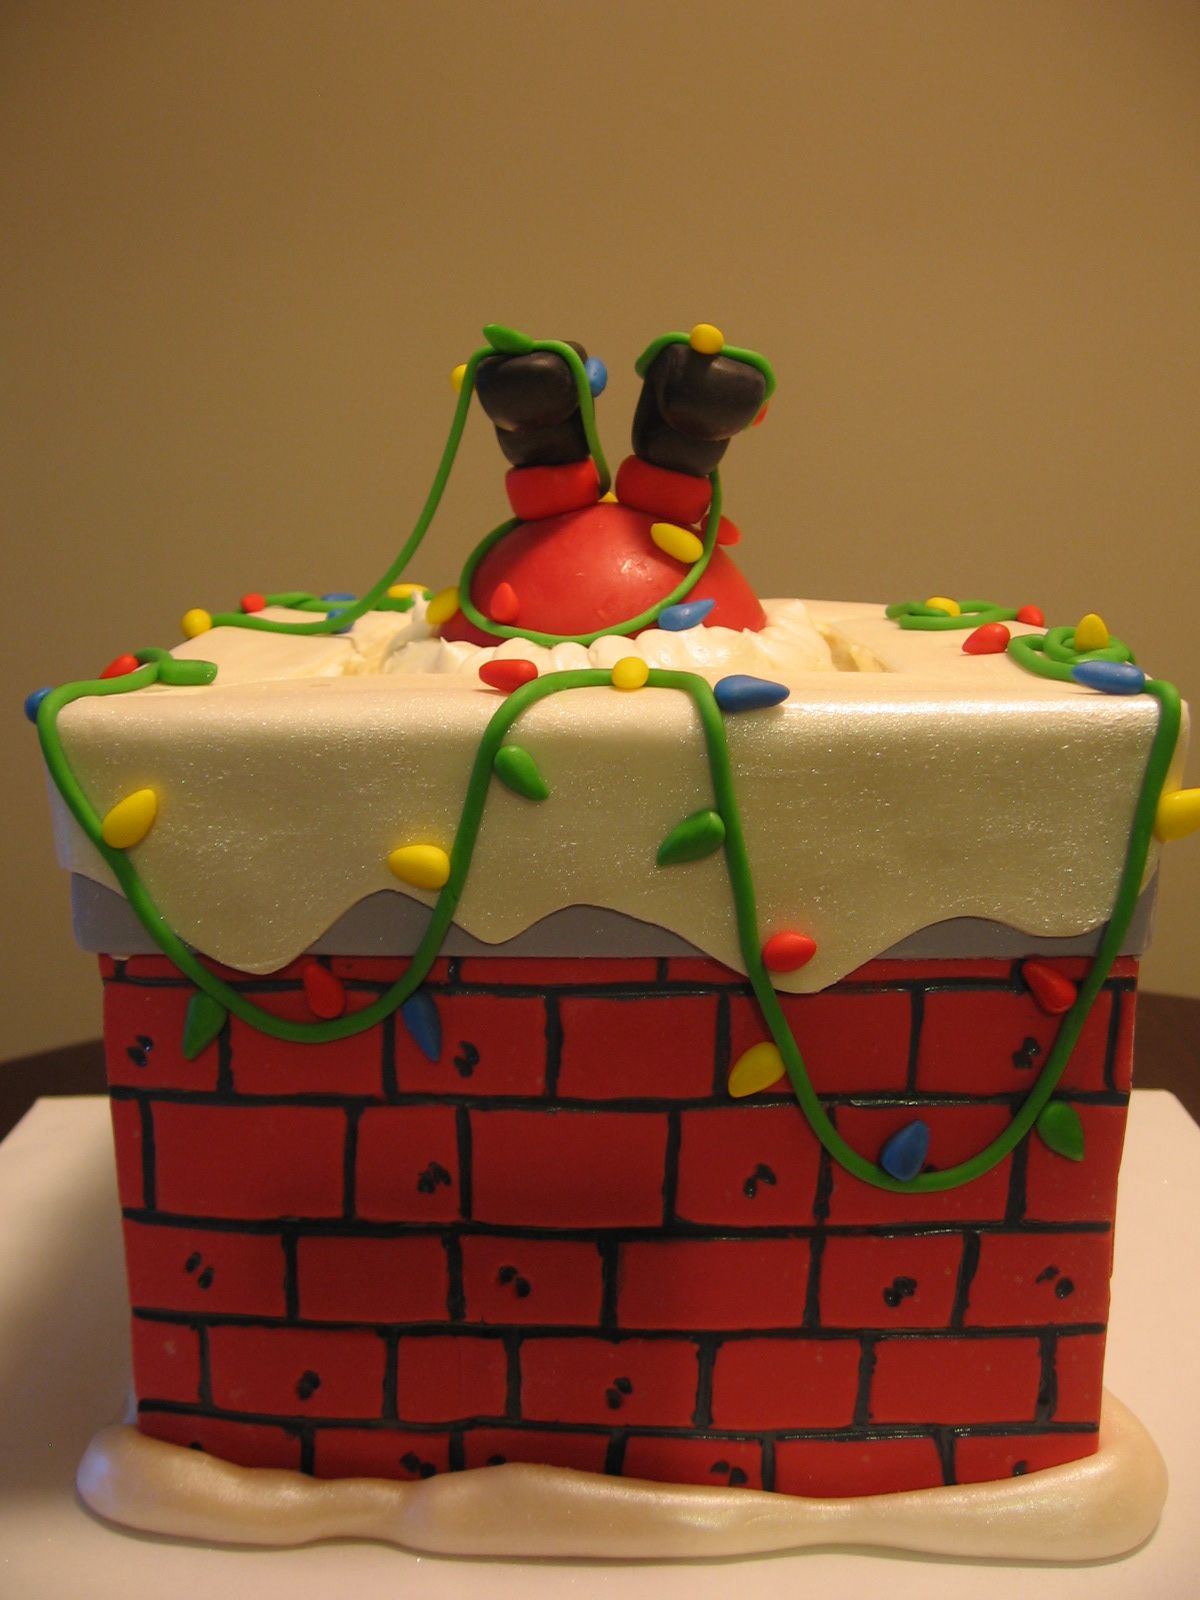 When Santa Got Stuck In The Chimney Top Christmas Cake: santa stuck in chimney cake